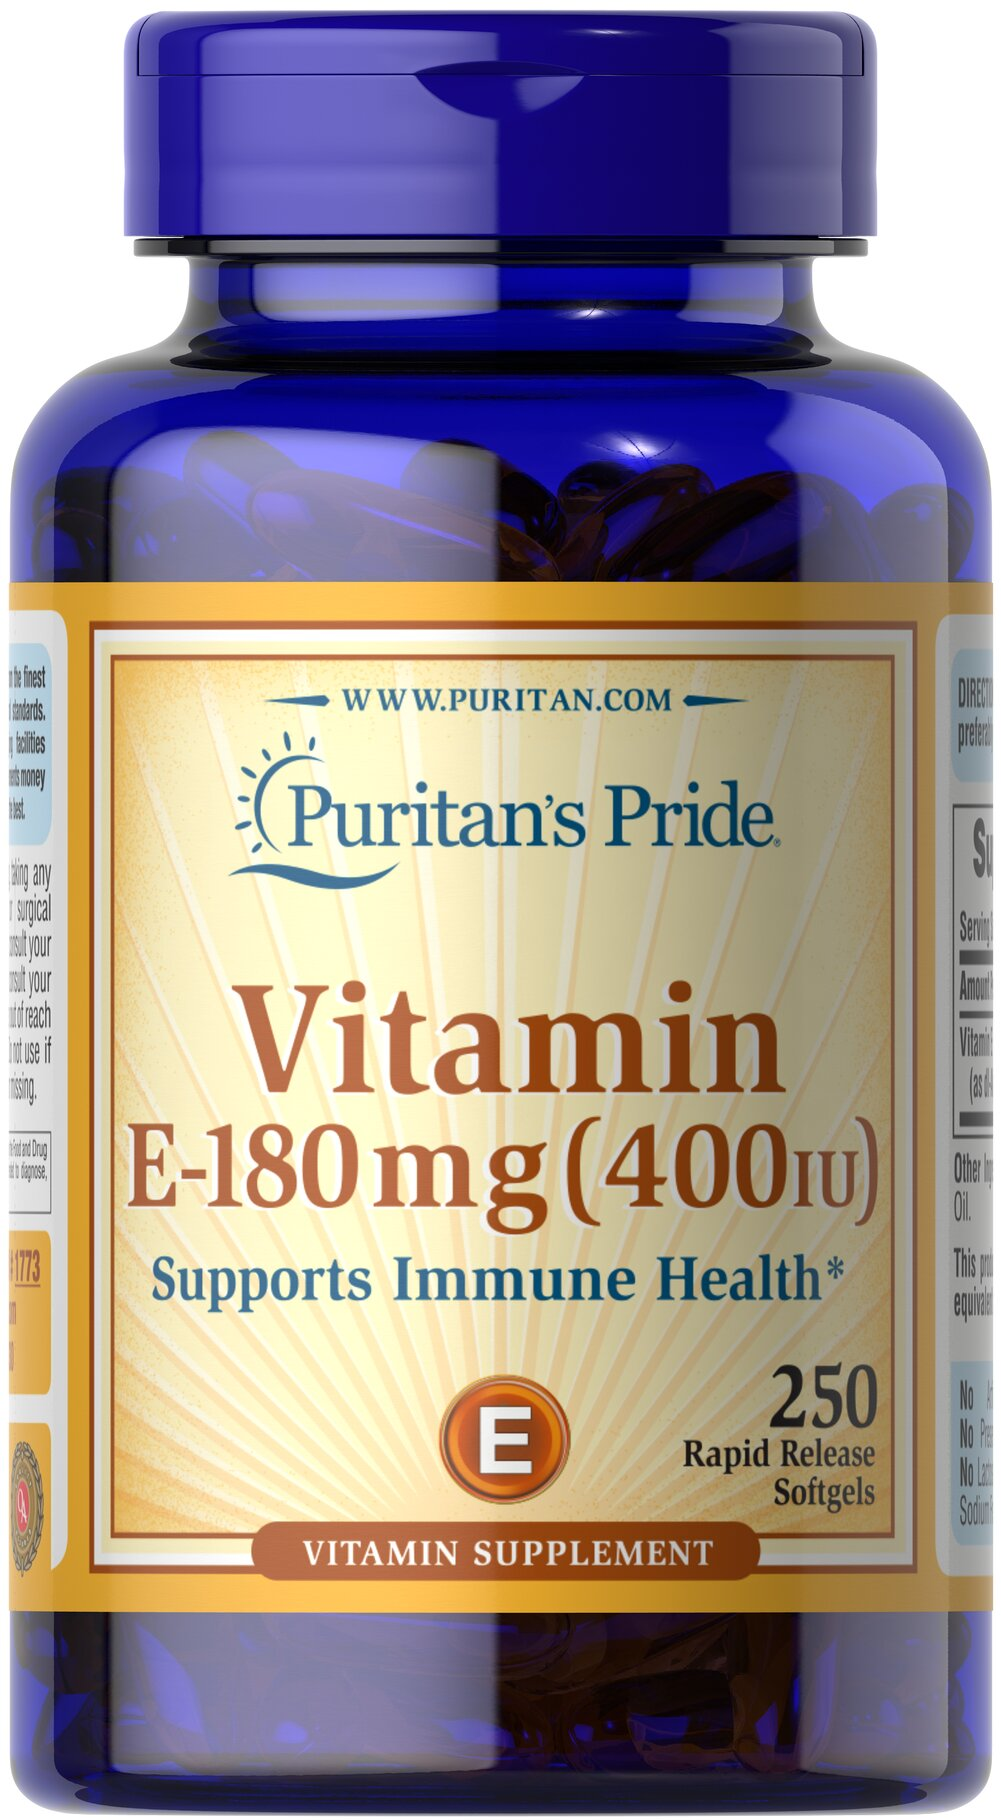 Vitamin E-400 IU <p>Features dl-Alpha Vitamin E, a synthetic form of Vitamin E</p><p>Promotes heart and circulatory health**</p><p>Contributes to healthy skin and immune function**</p><p>Rapid release liquid softgels are easy to swallow</p><p>One a day formula</p> 250 Softgels 400 IU $25.39